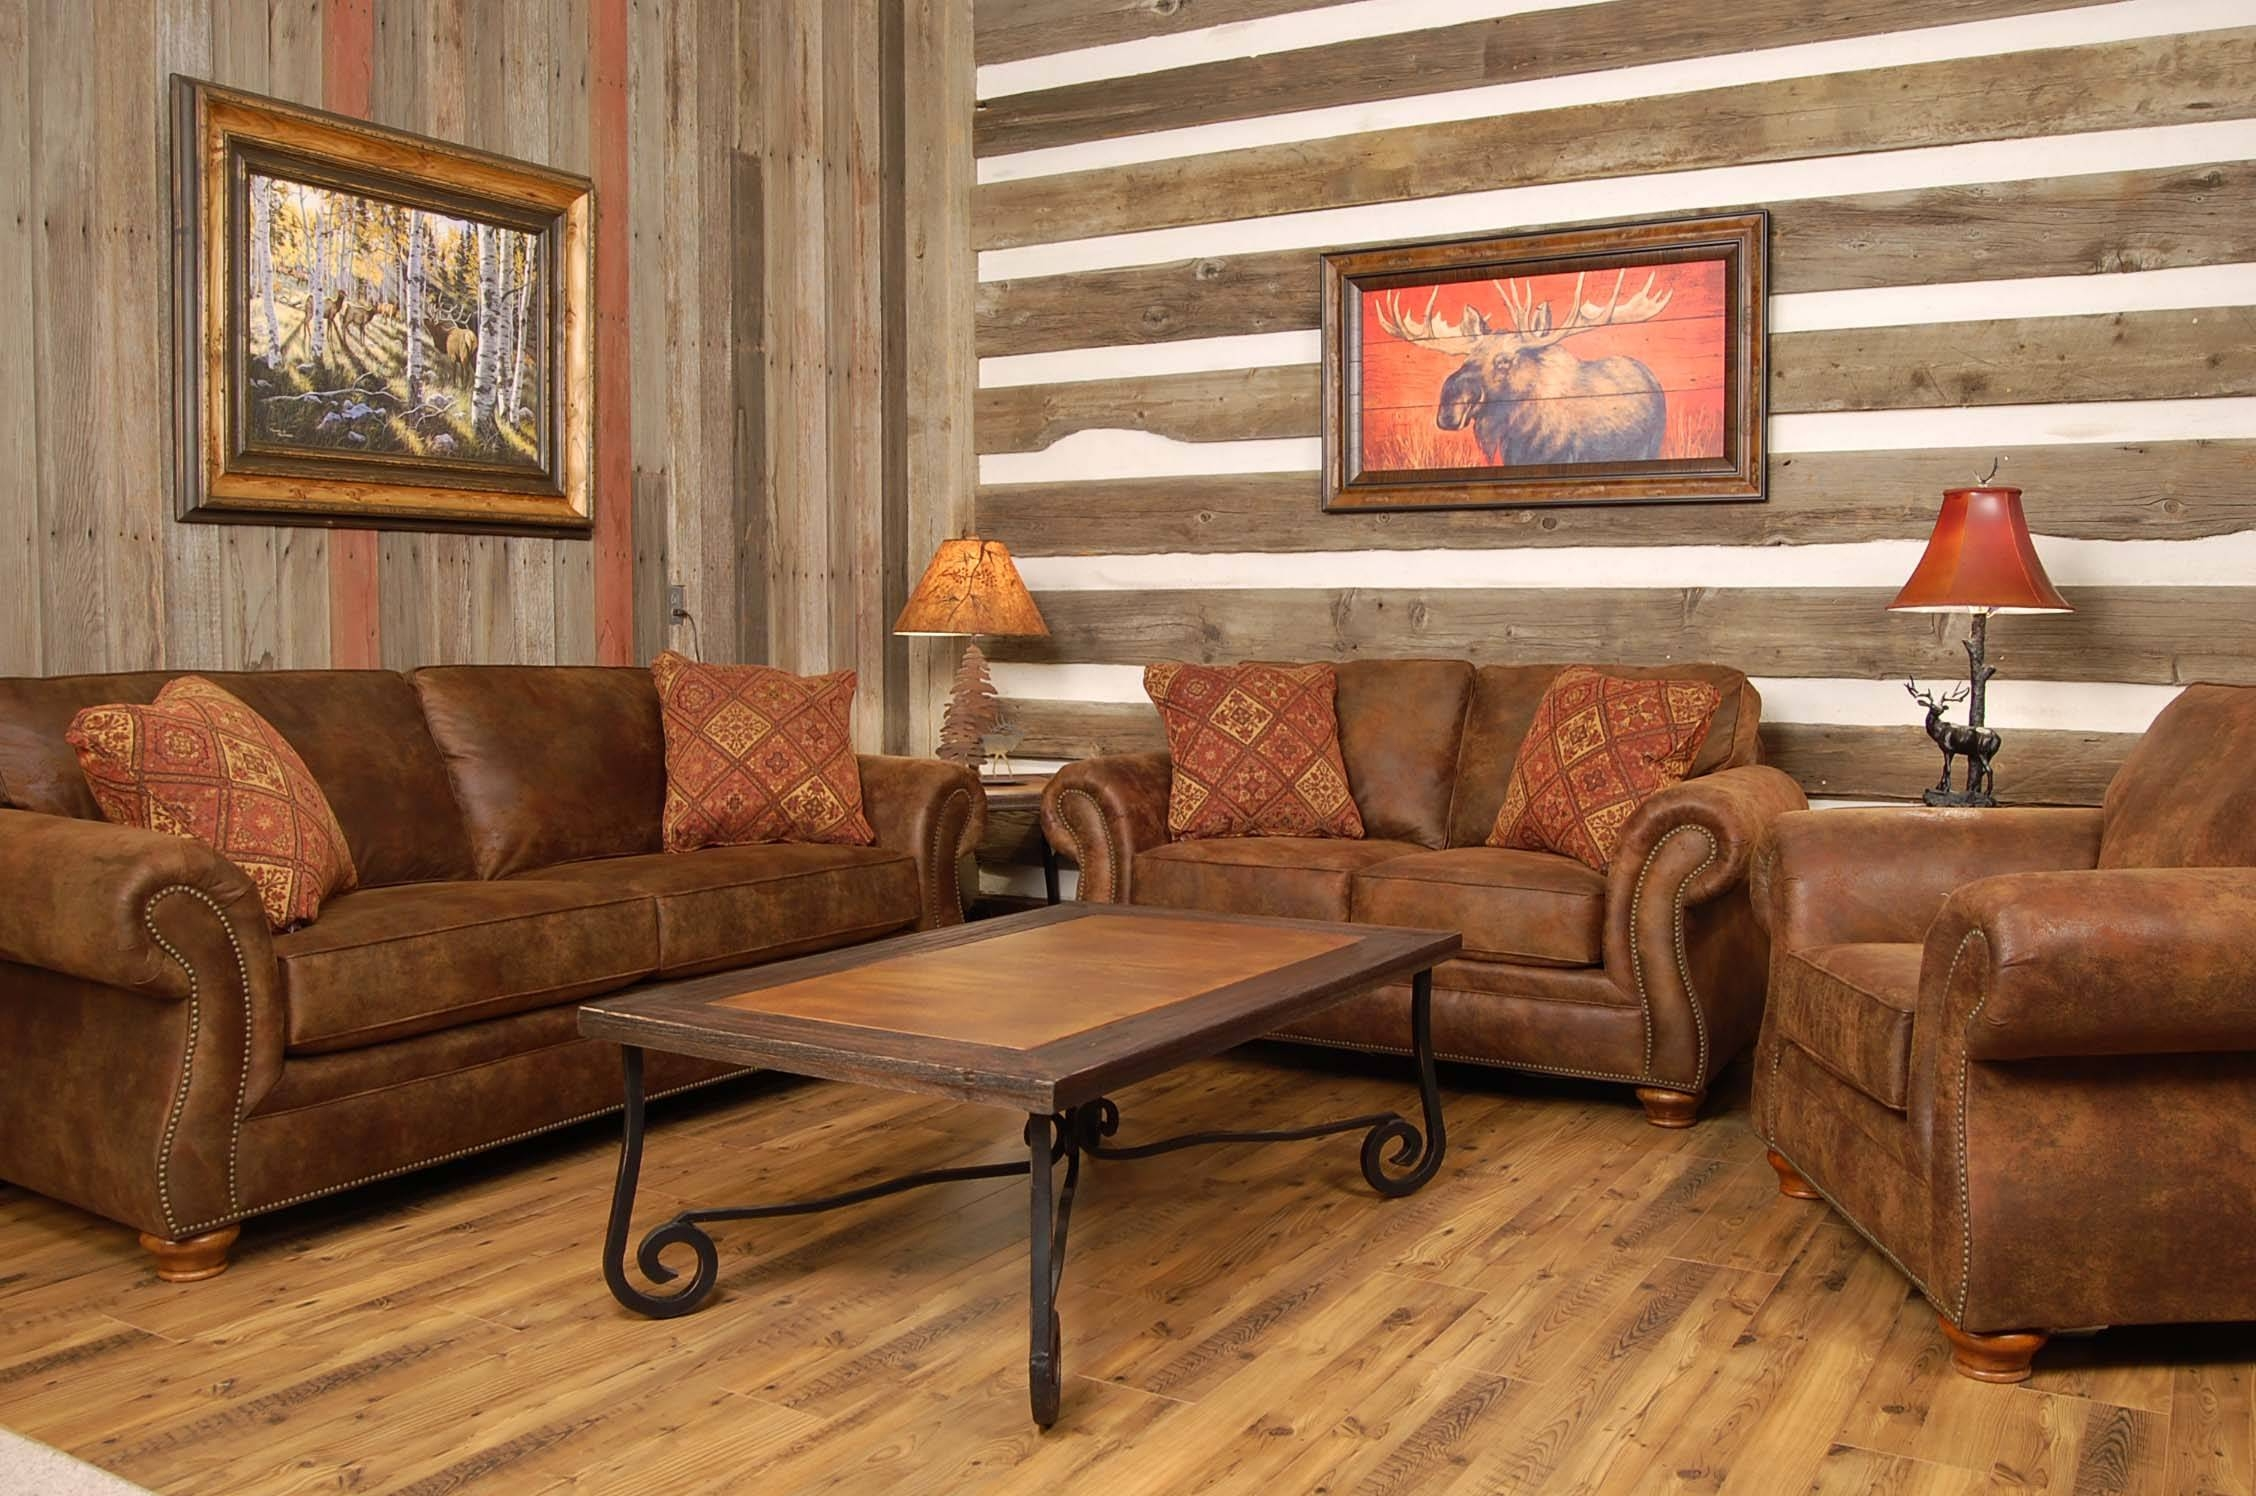 Country Style Sofas And Chairs | Tehranmix Decoration with Country Sofas And Chairs (Image 11 of 15)